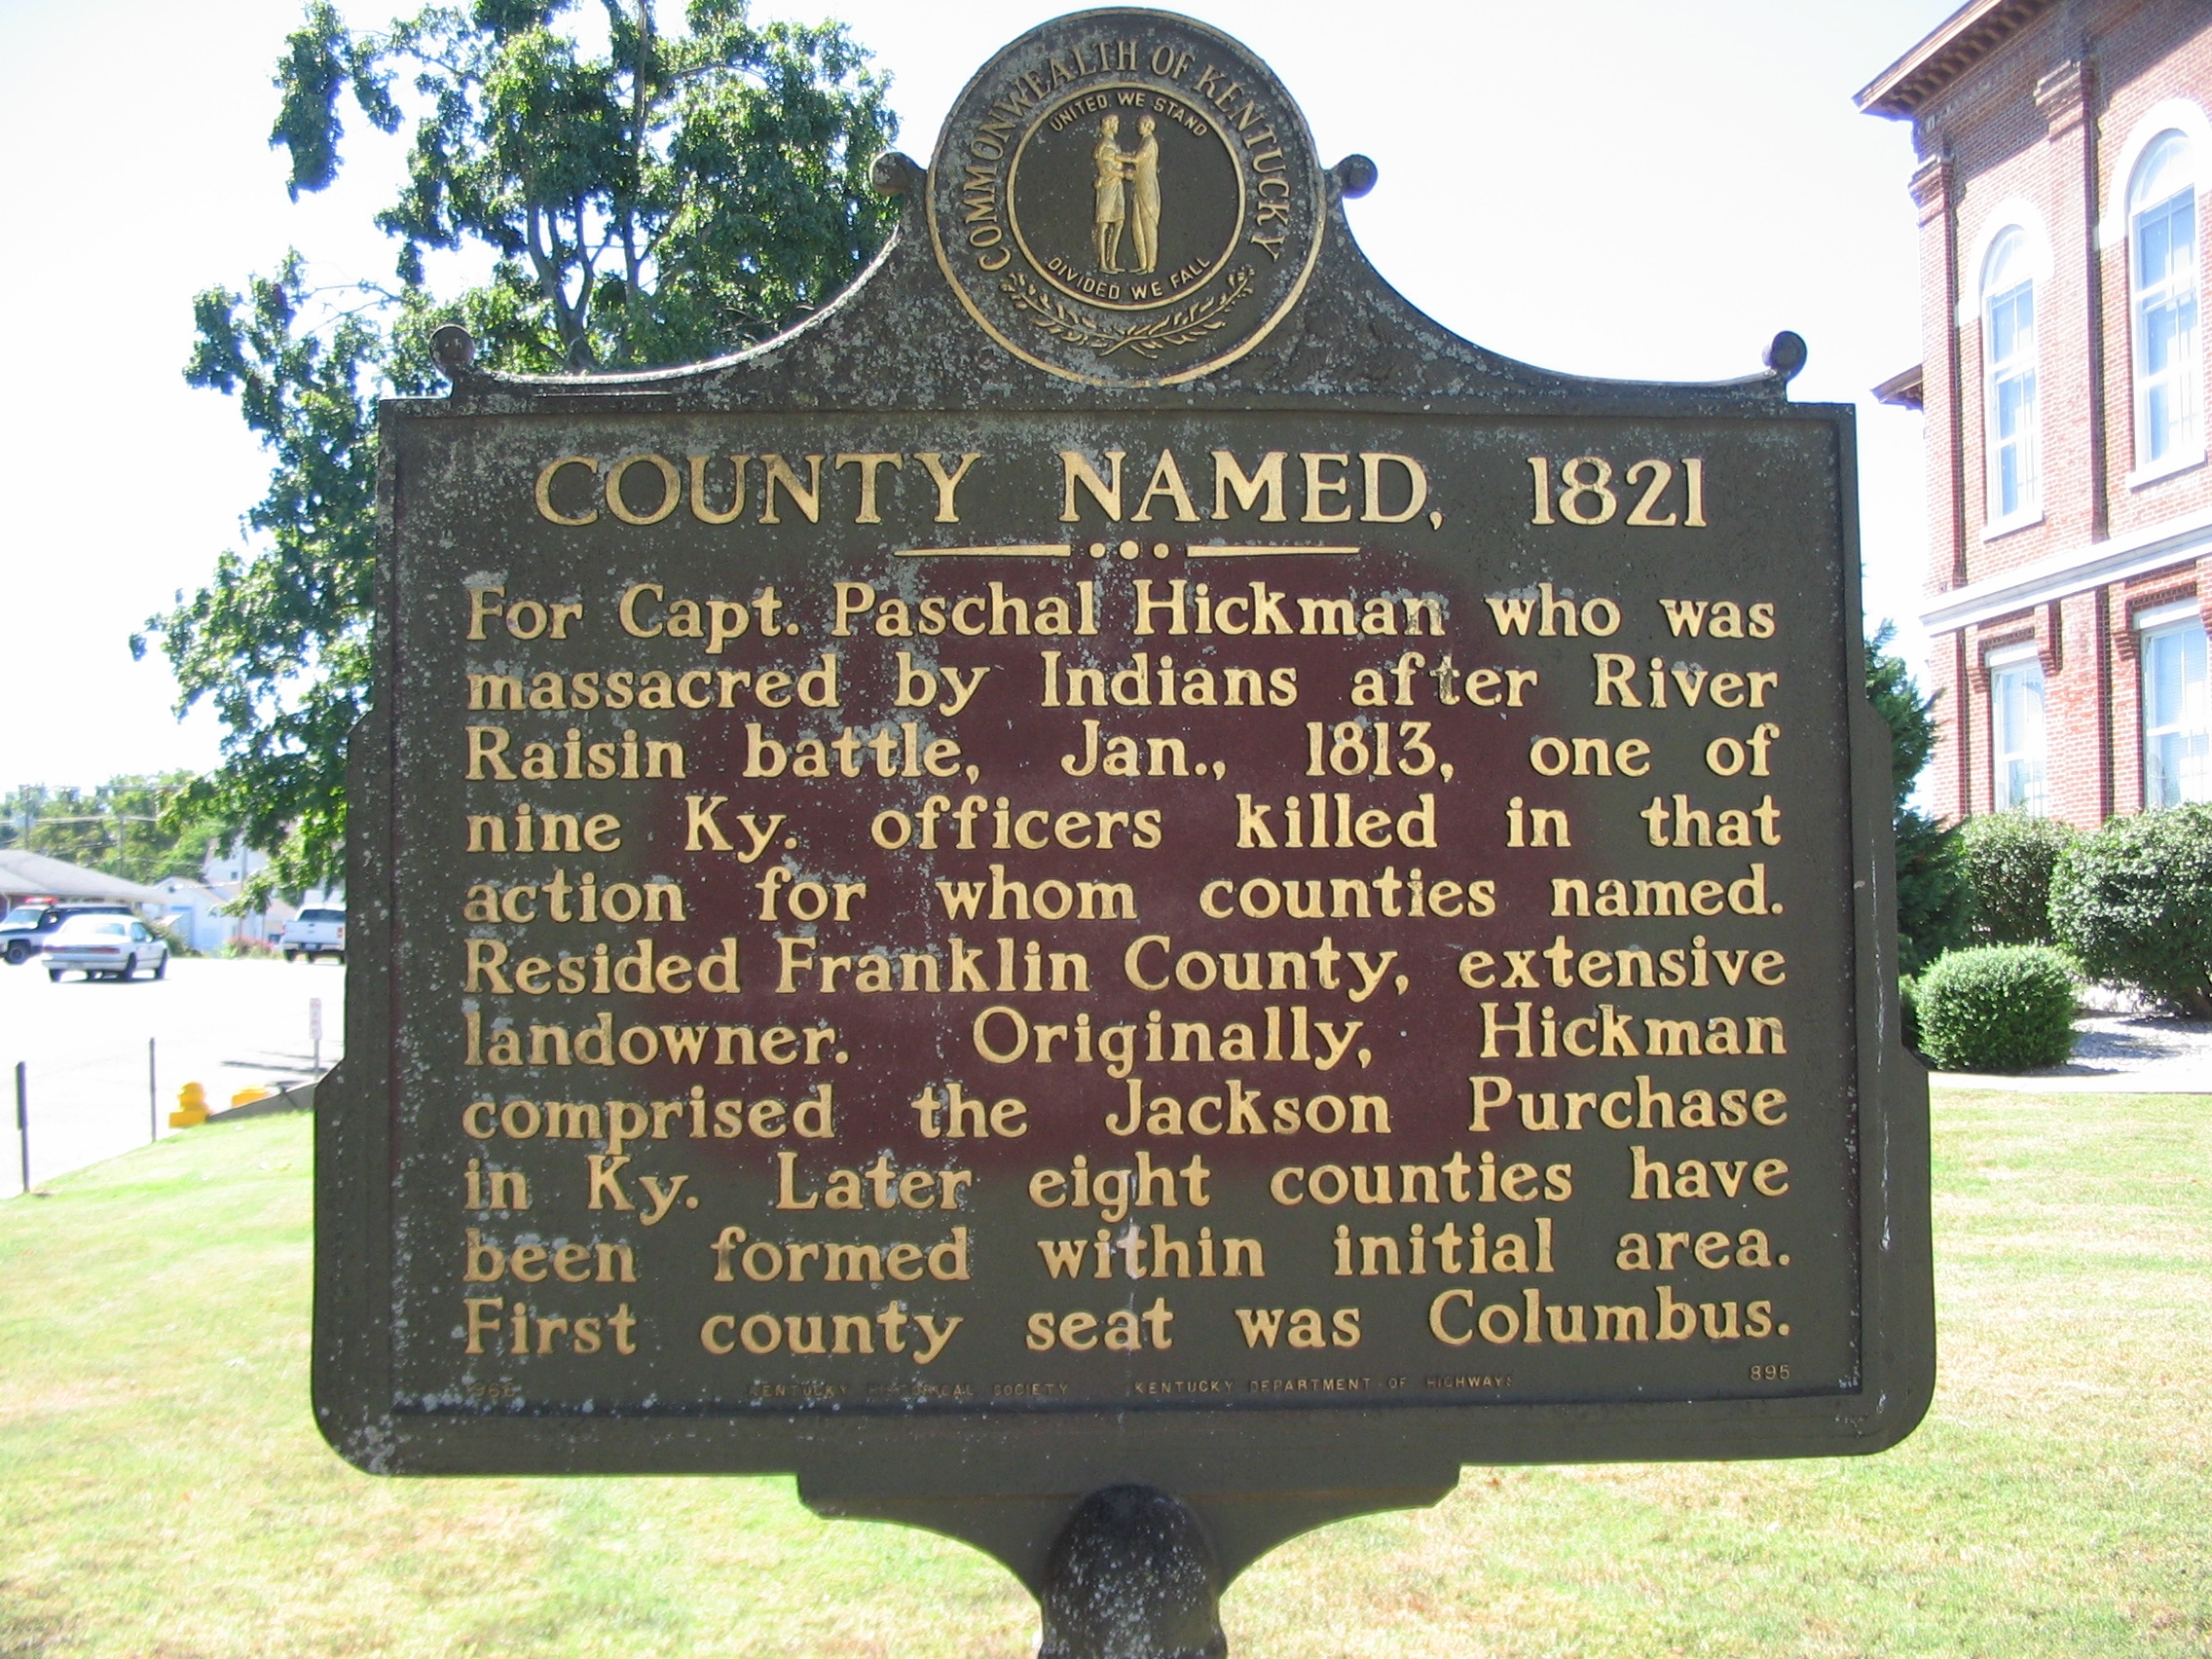 County Named, 1821 Marker